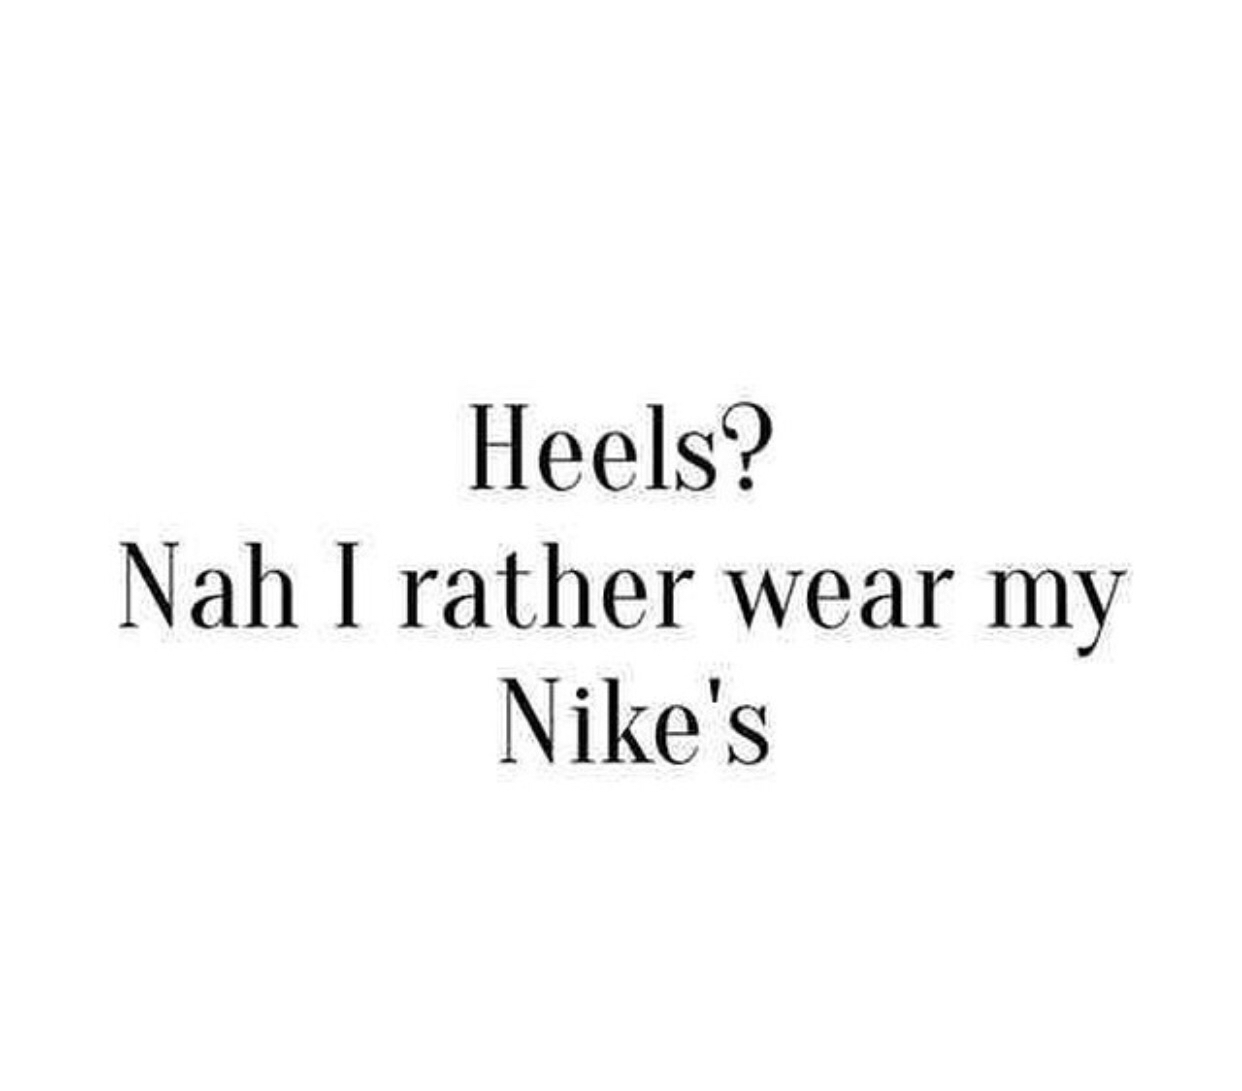 heels, nike, quotes, shoes - image #3032744 by marine21 on ...